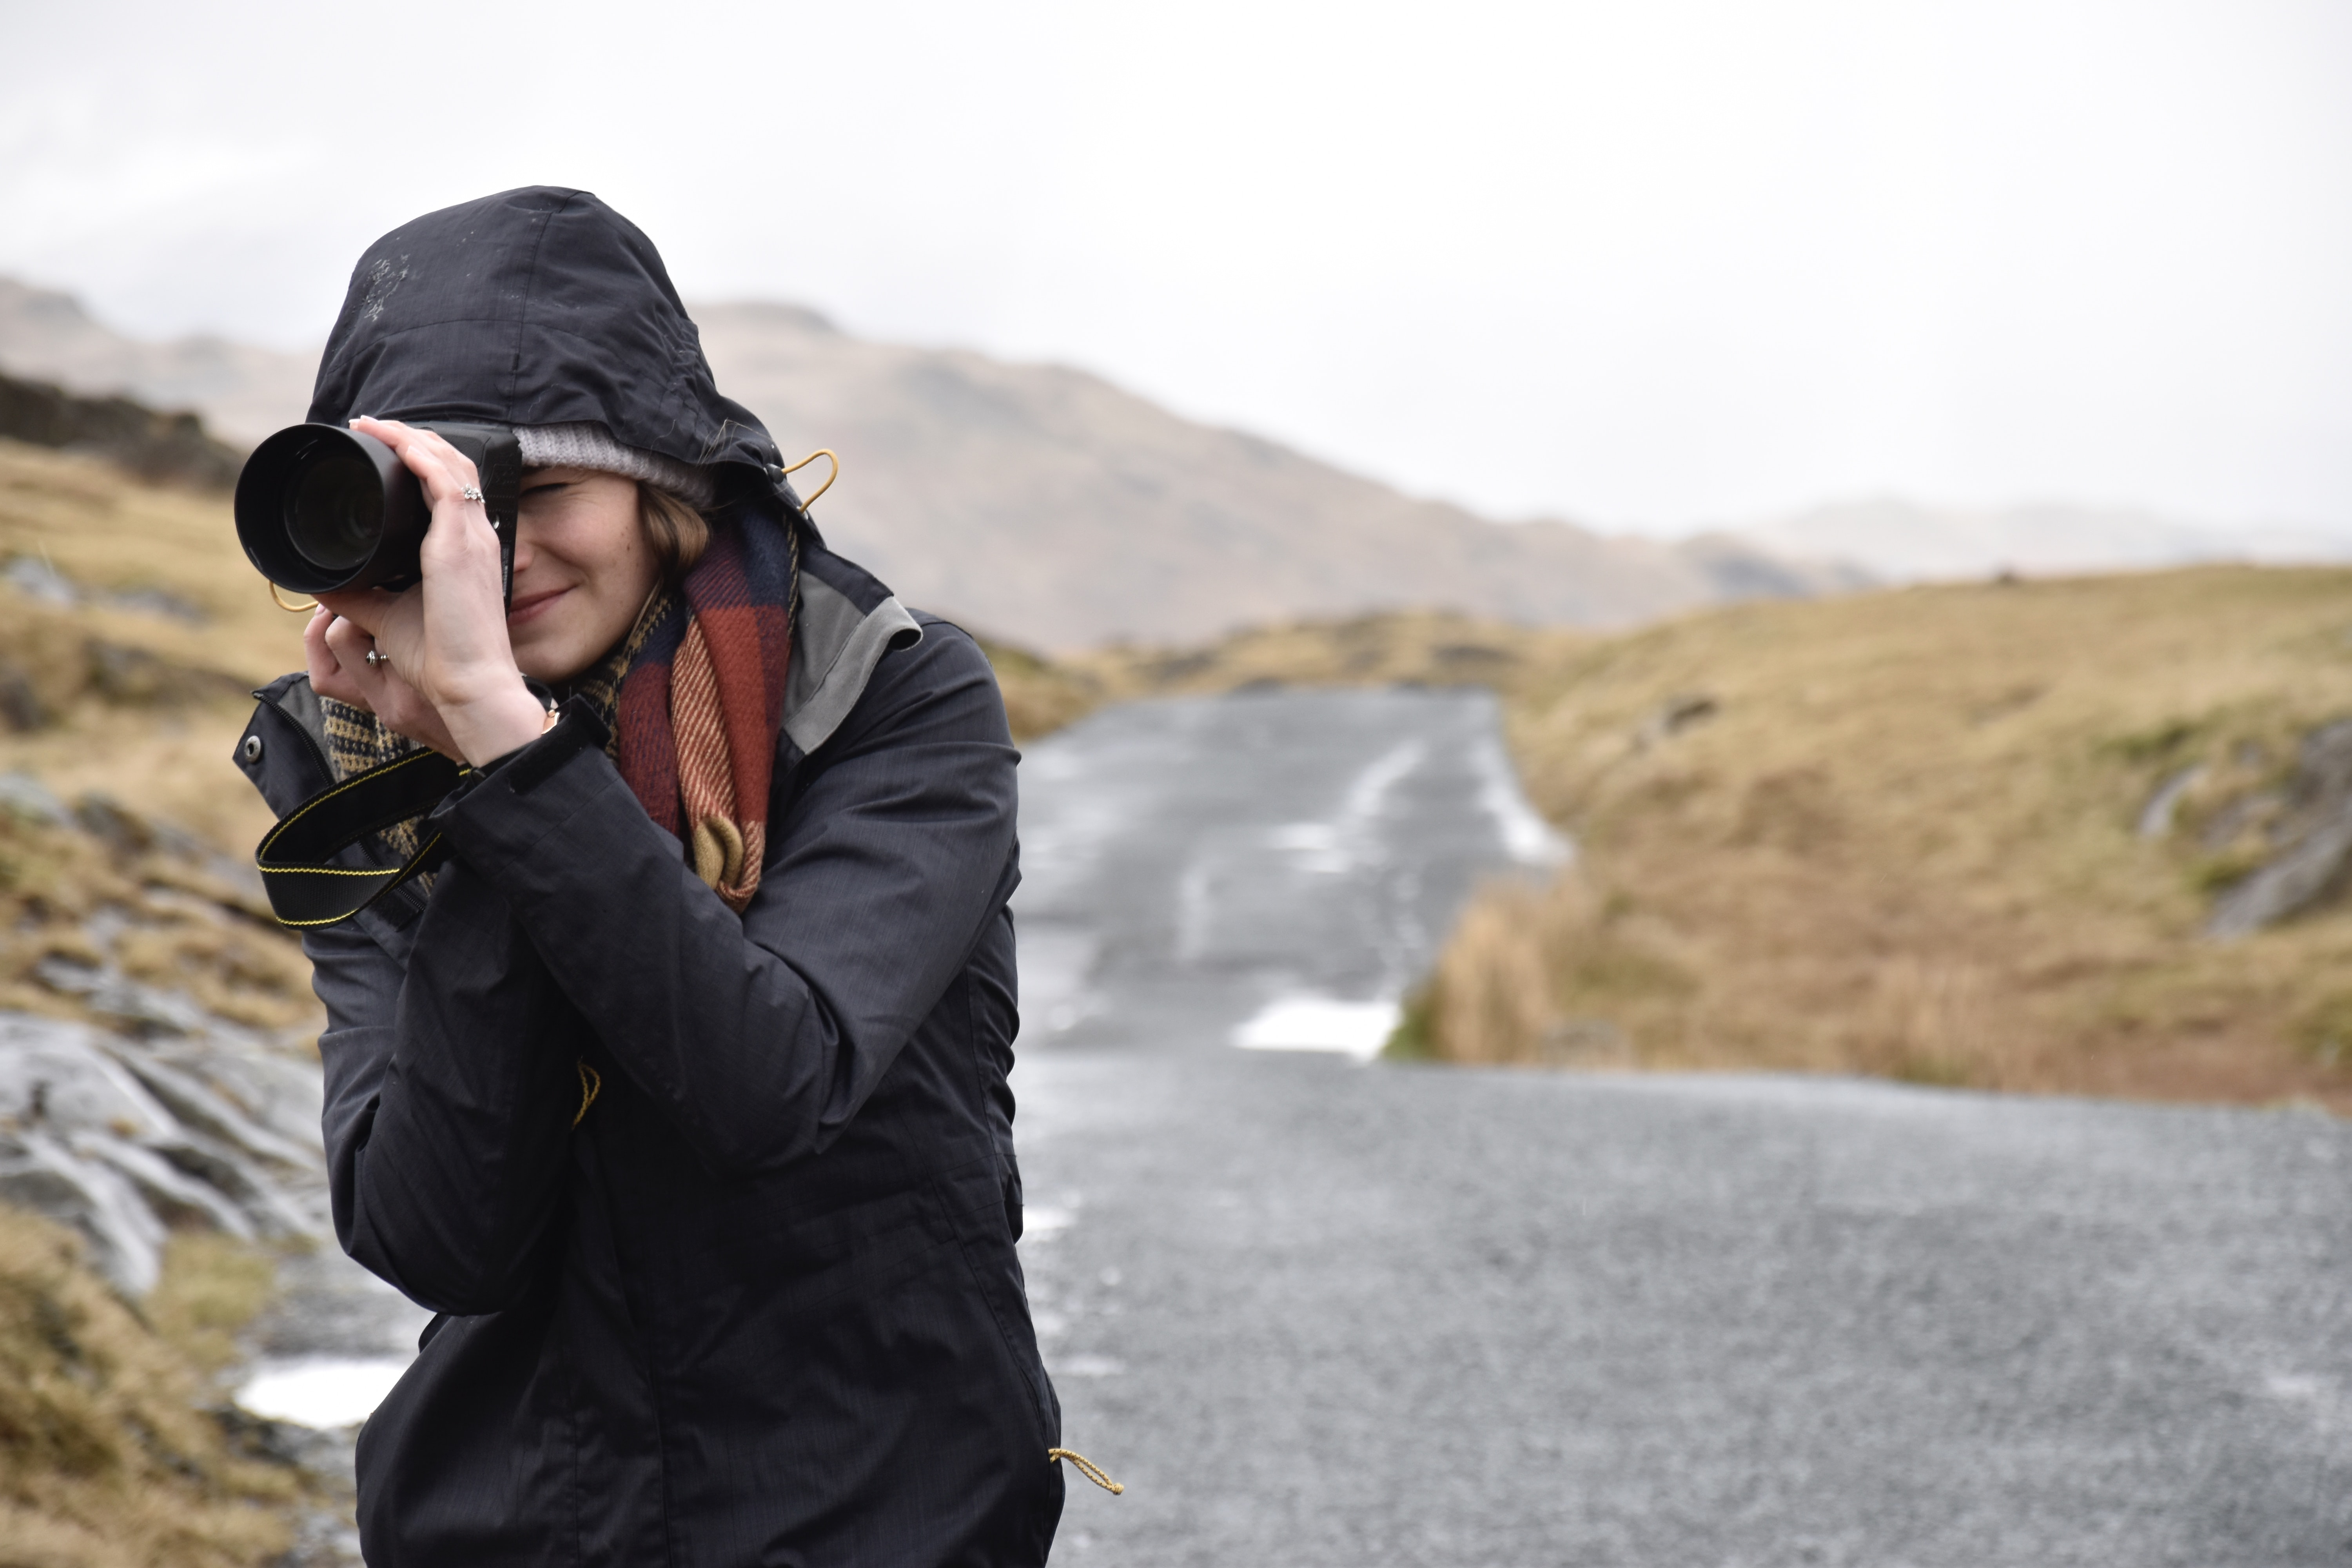 Photographer focuses her camera lens on a mountain road